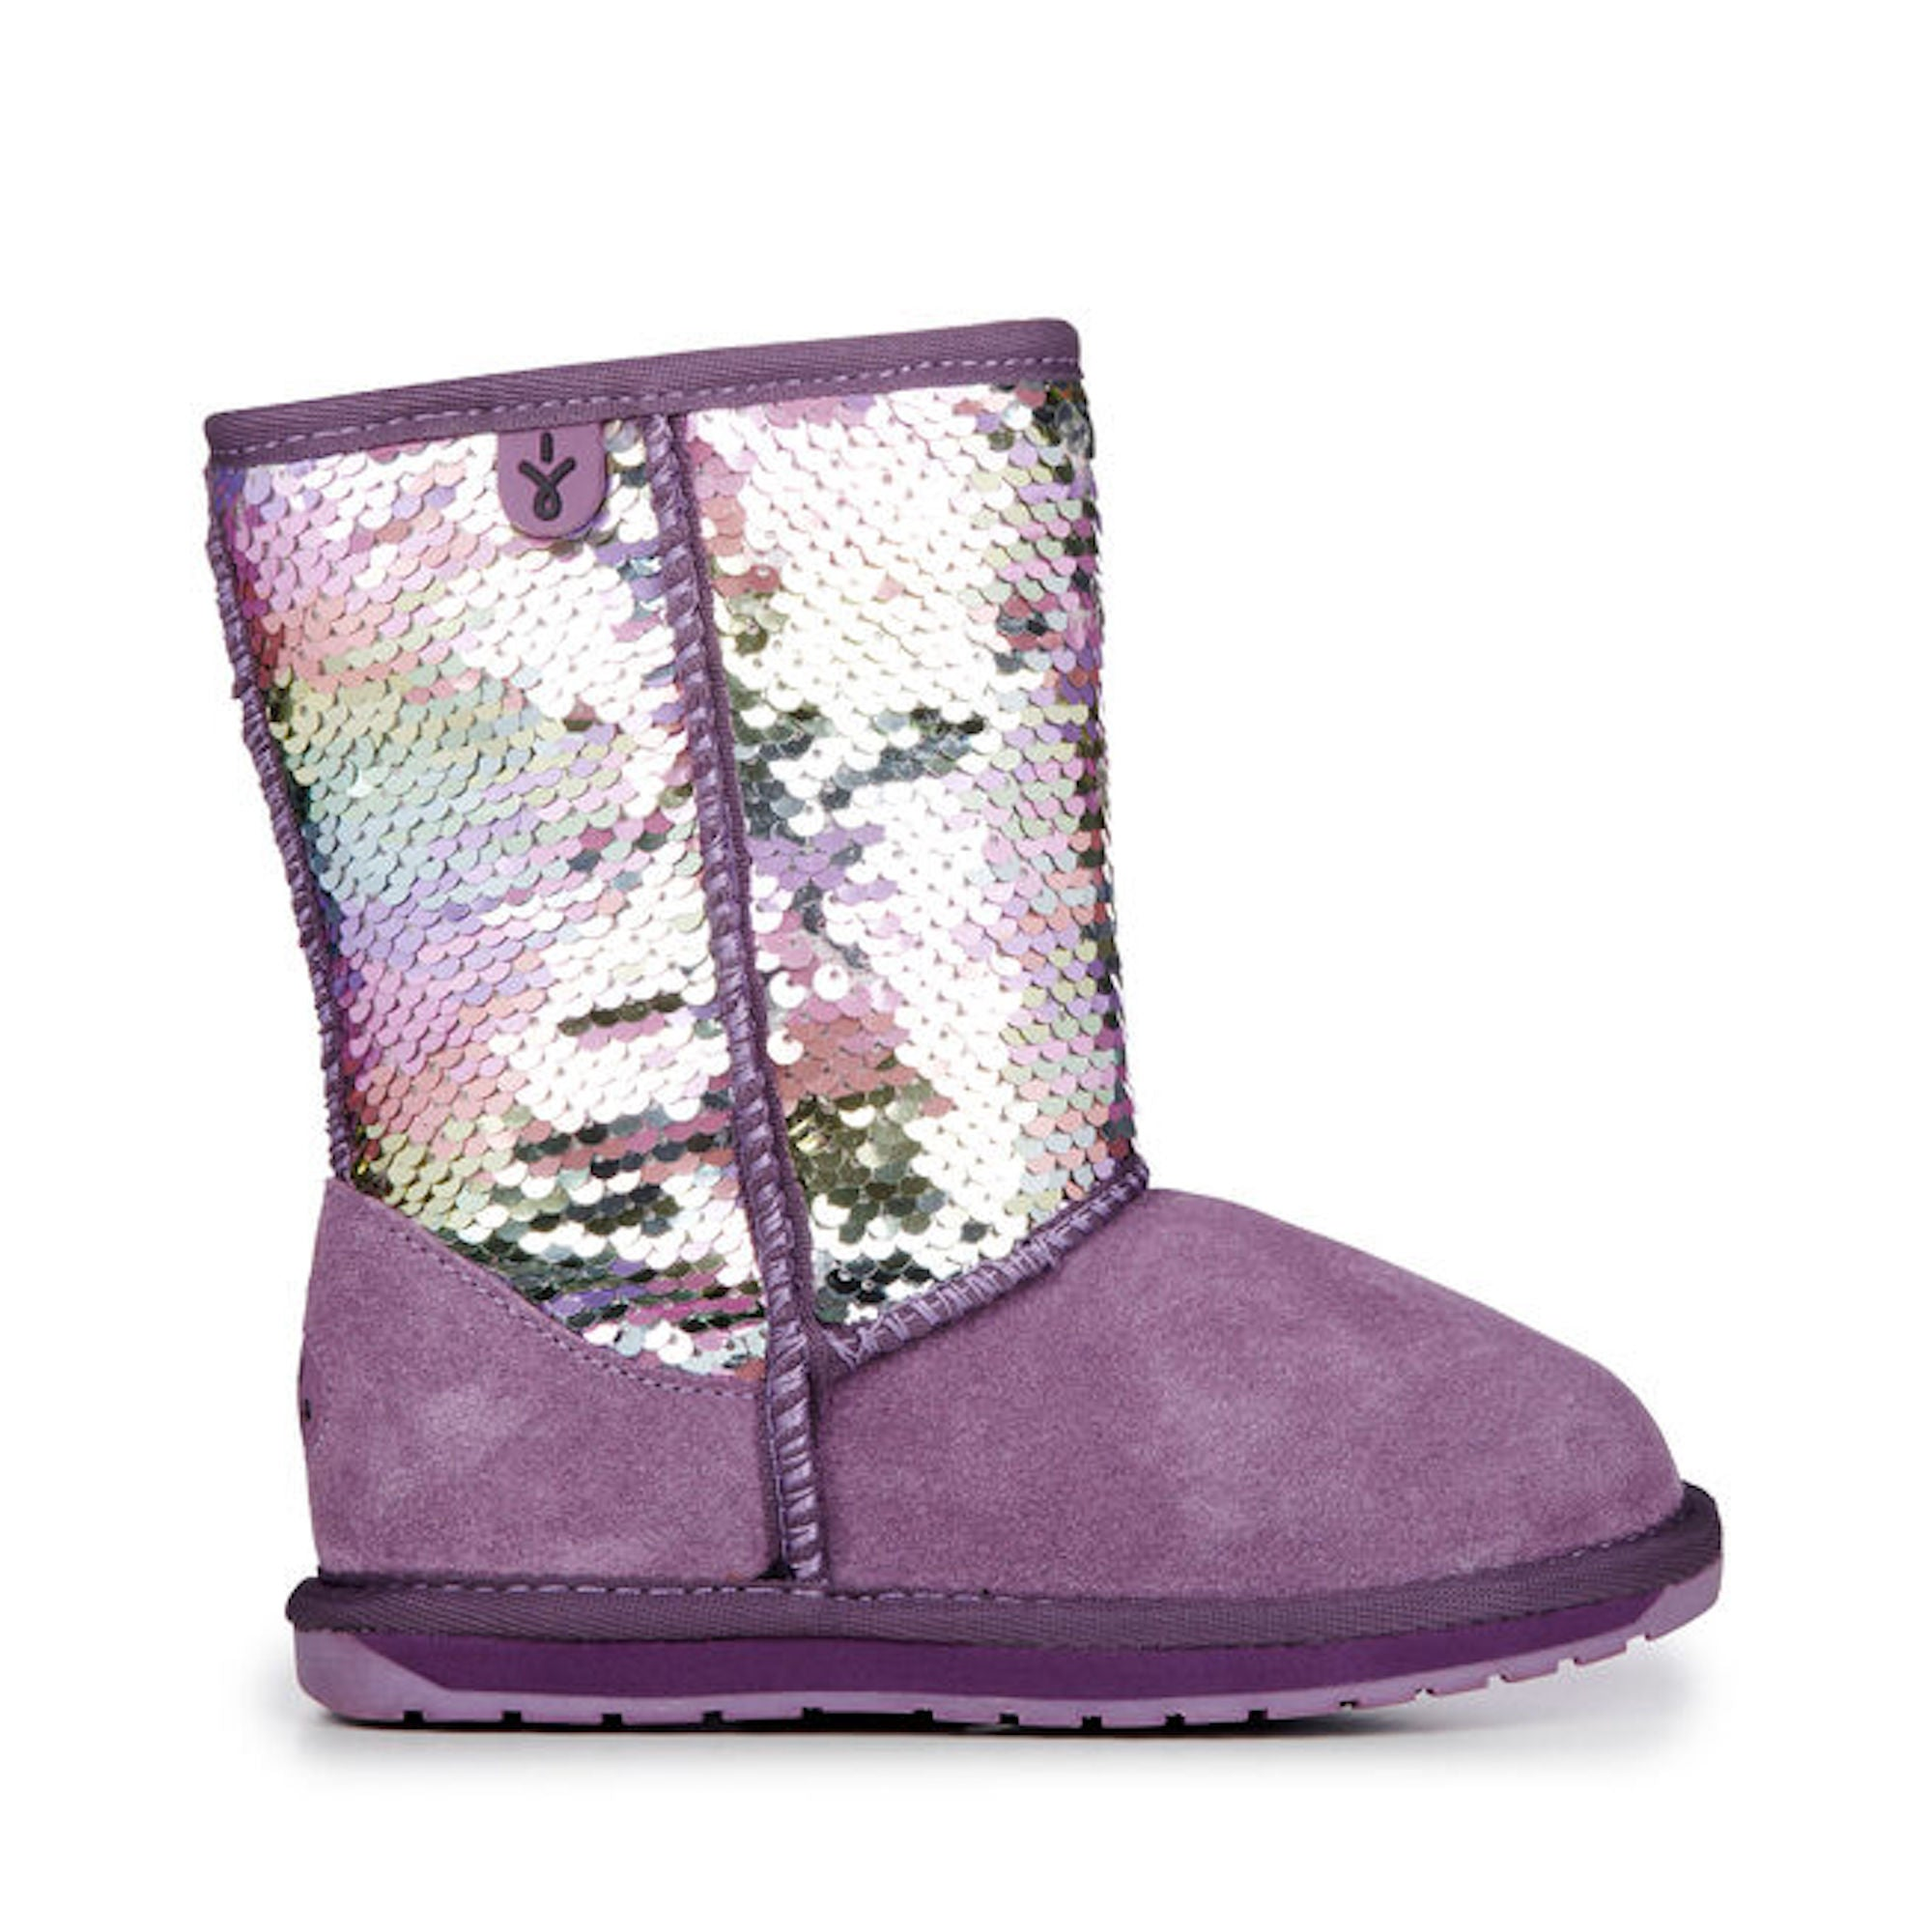 Wallaby Sequin Grape EMU Boot